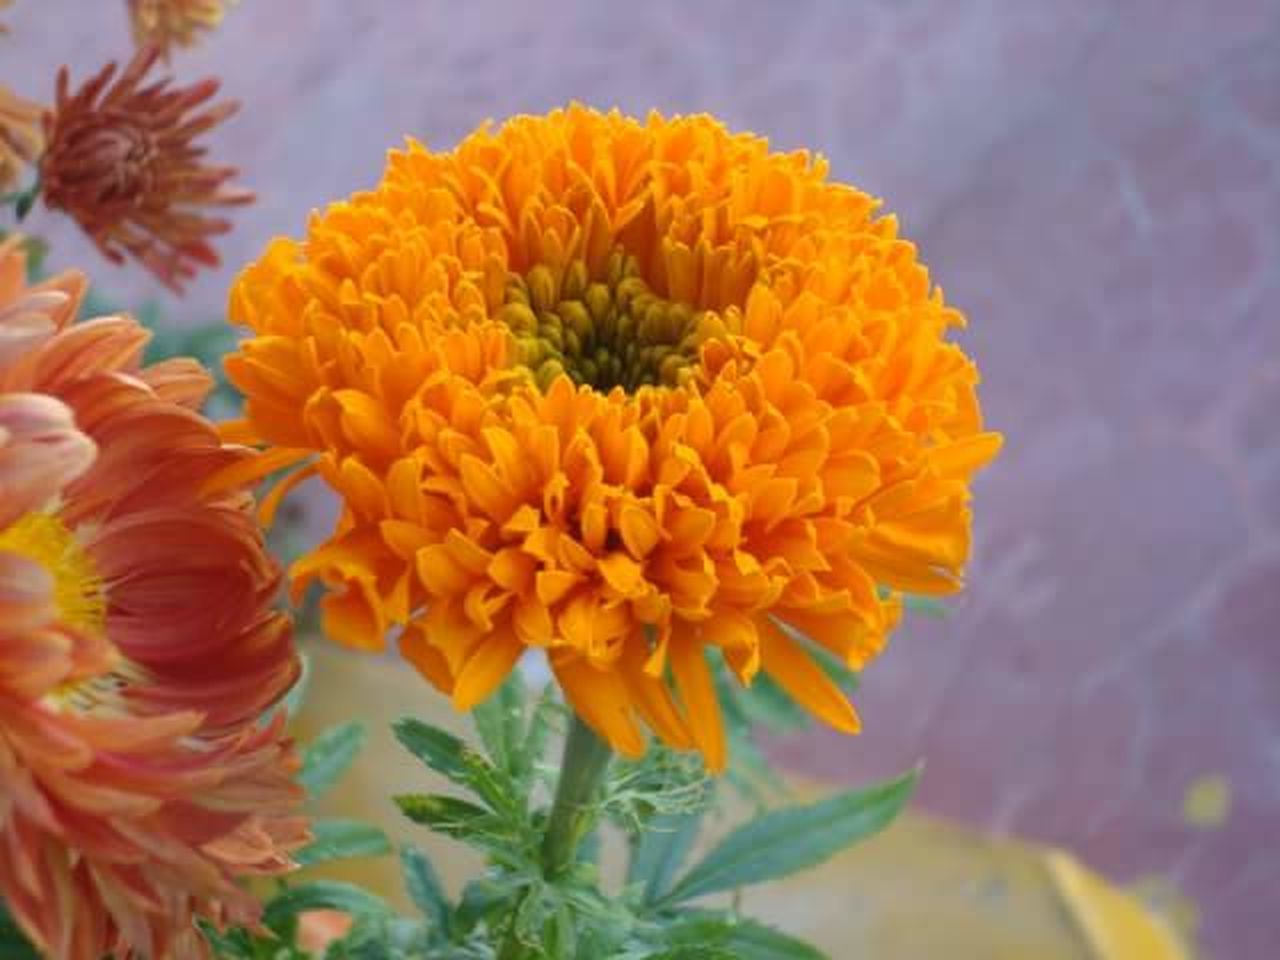 flower, beauty in nature, petal, fragility, nature, plant, flower head, close-up, freshness, growth, no people, outdoors, day, leaf, blooming, marigold